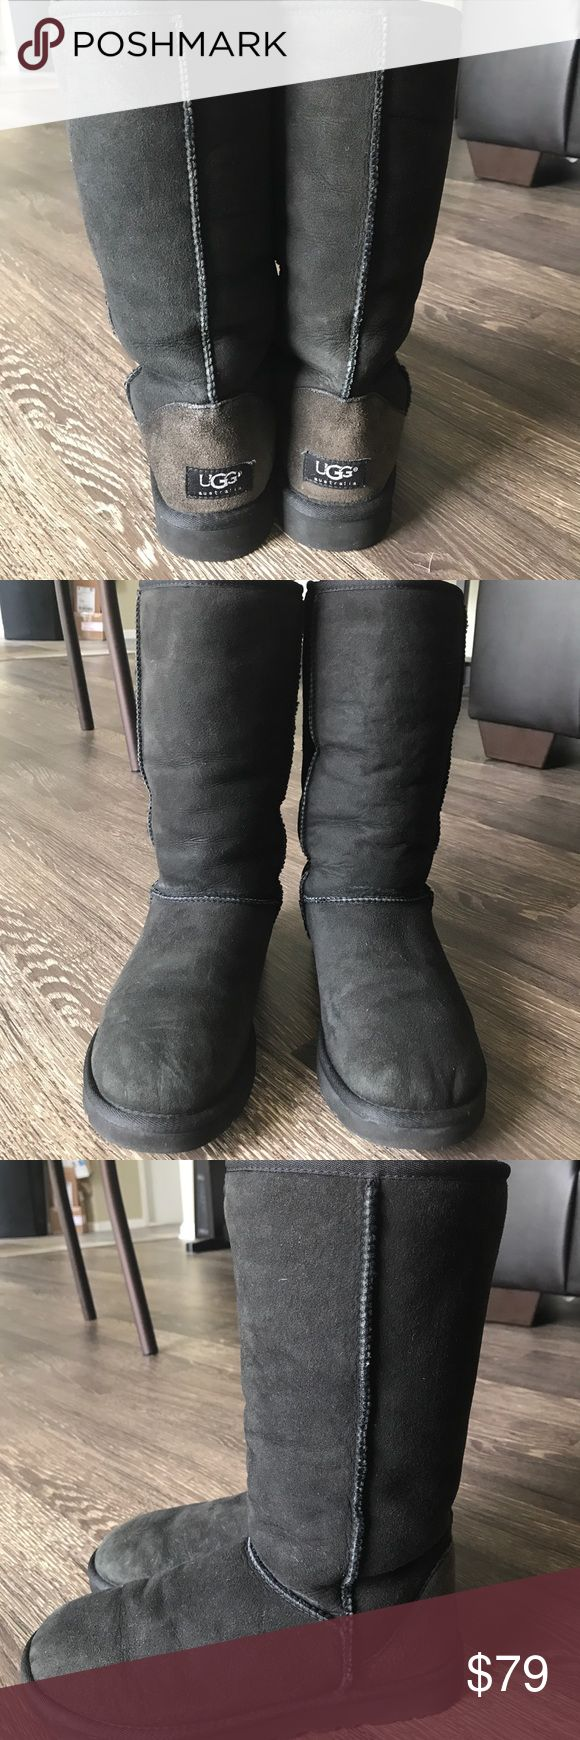 UGG Classic Tall Boots Great Condition. Super comfortable!!! UGG Shoes Ankle Boots & Booties